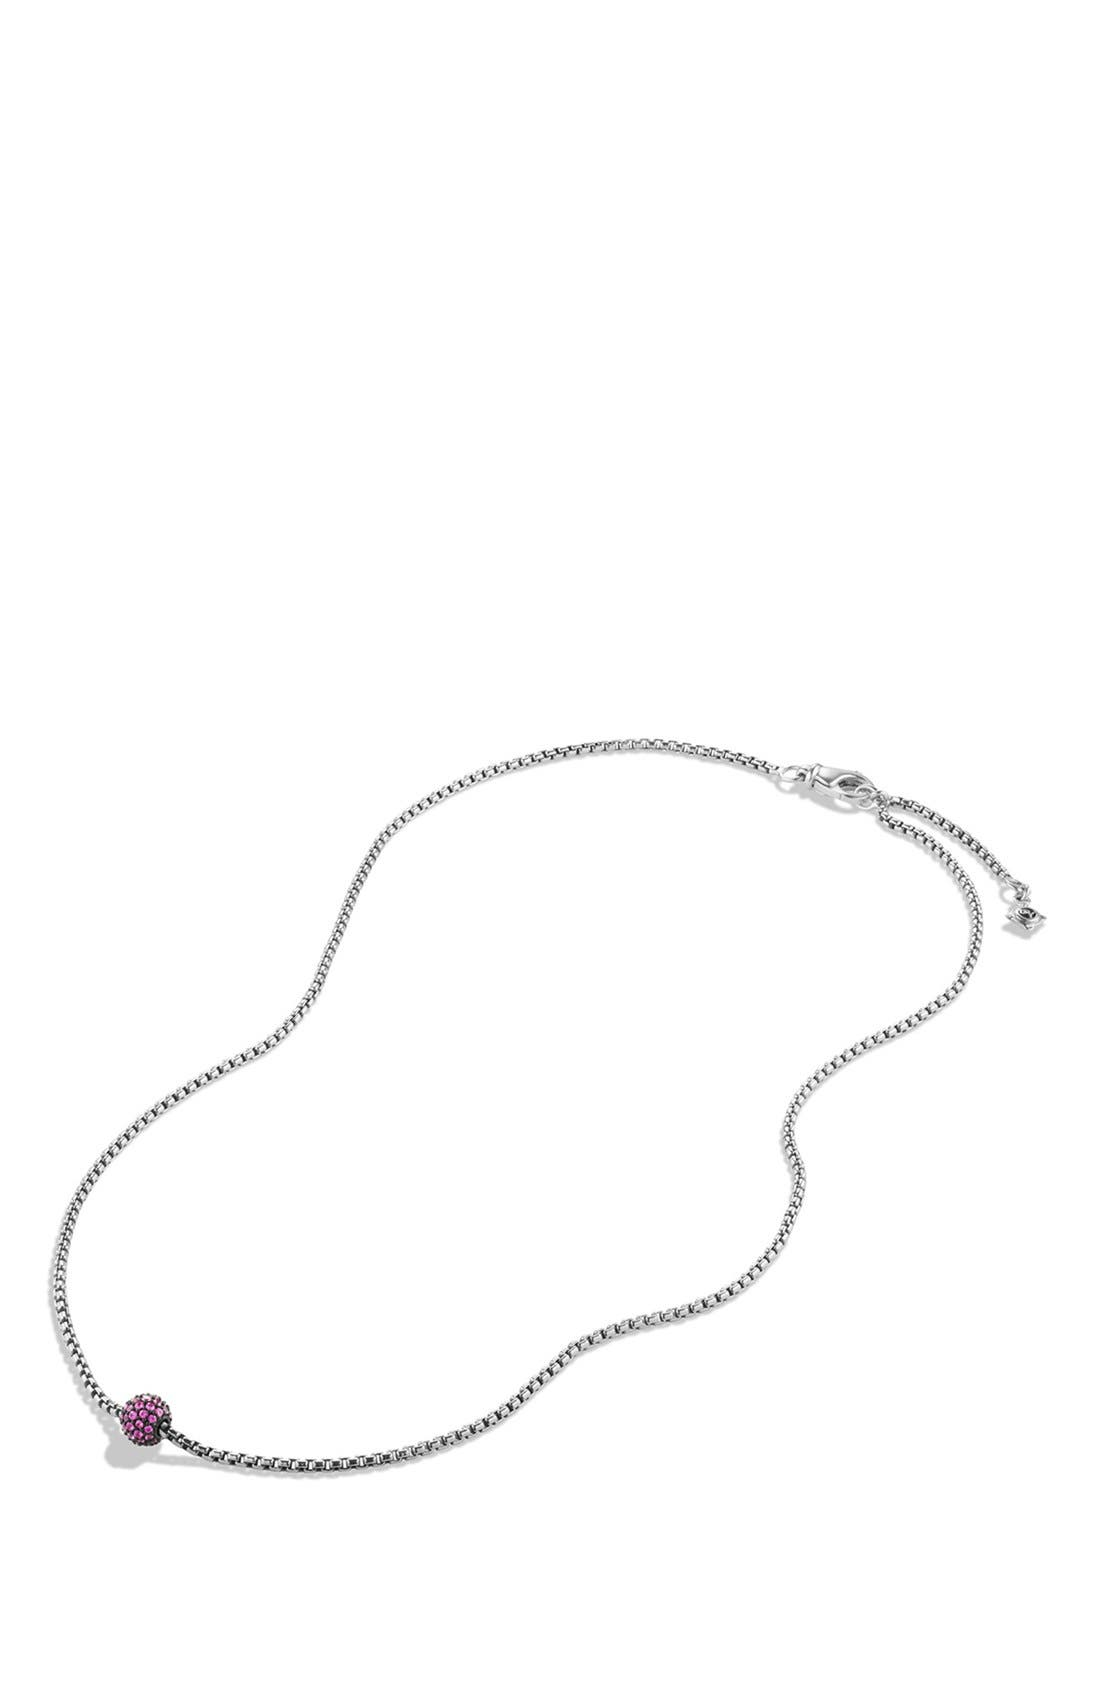 Alternate Image 2  - David Yurman 'Metro' Petite Pavé Chain Necklace with Sapphires